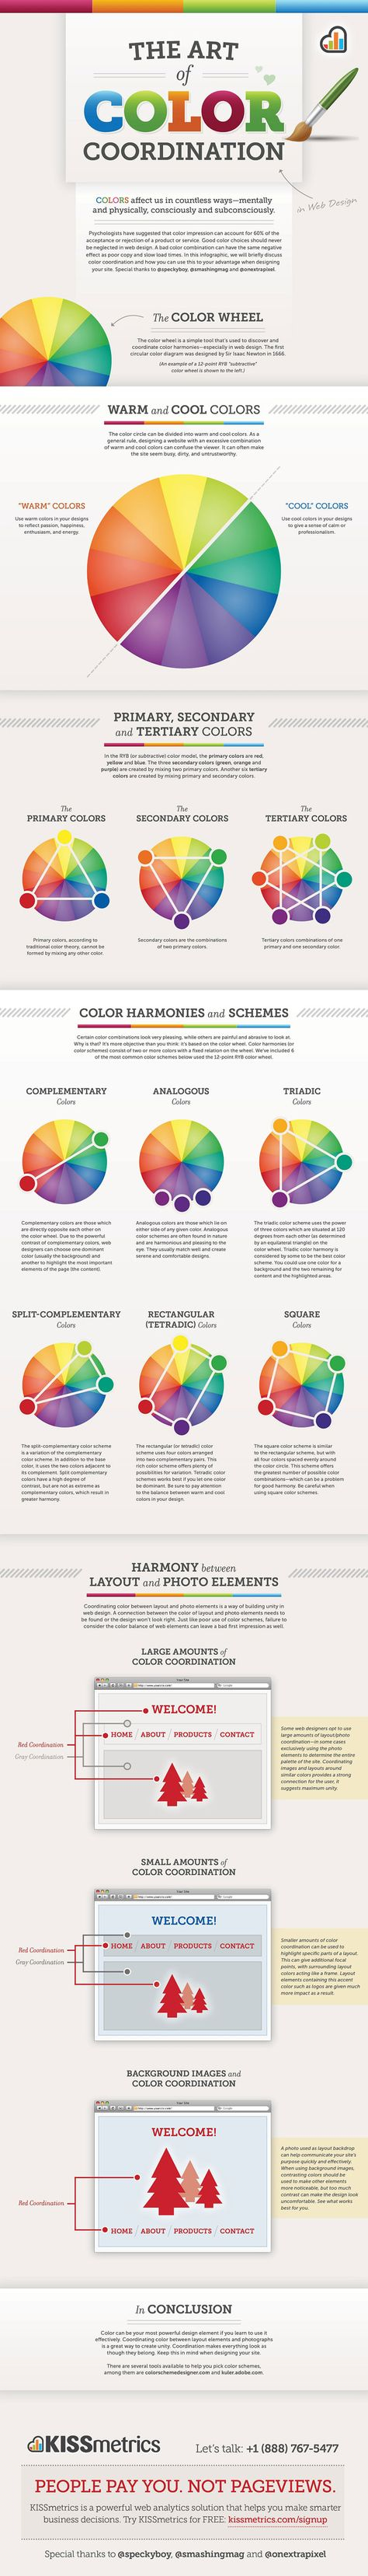 Infographic: The science of color